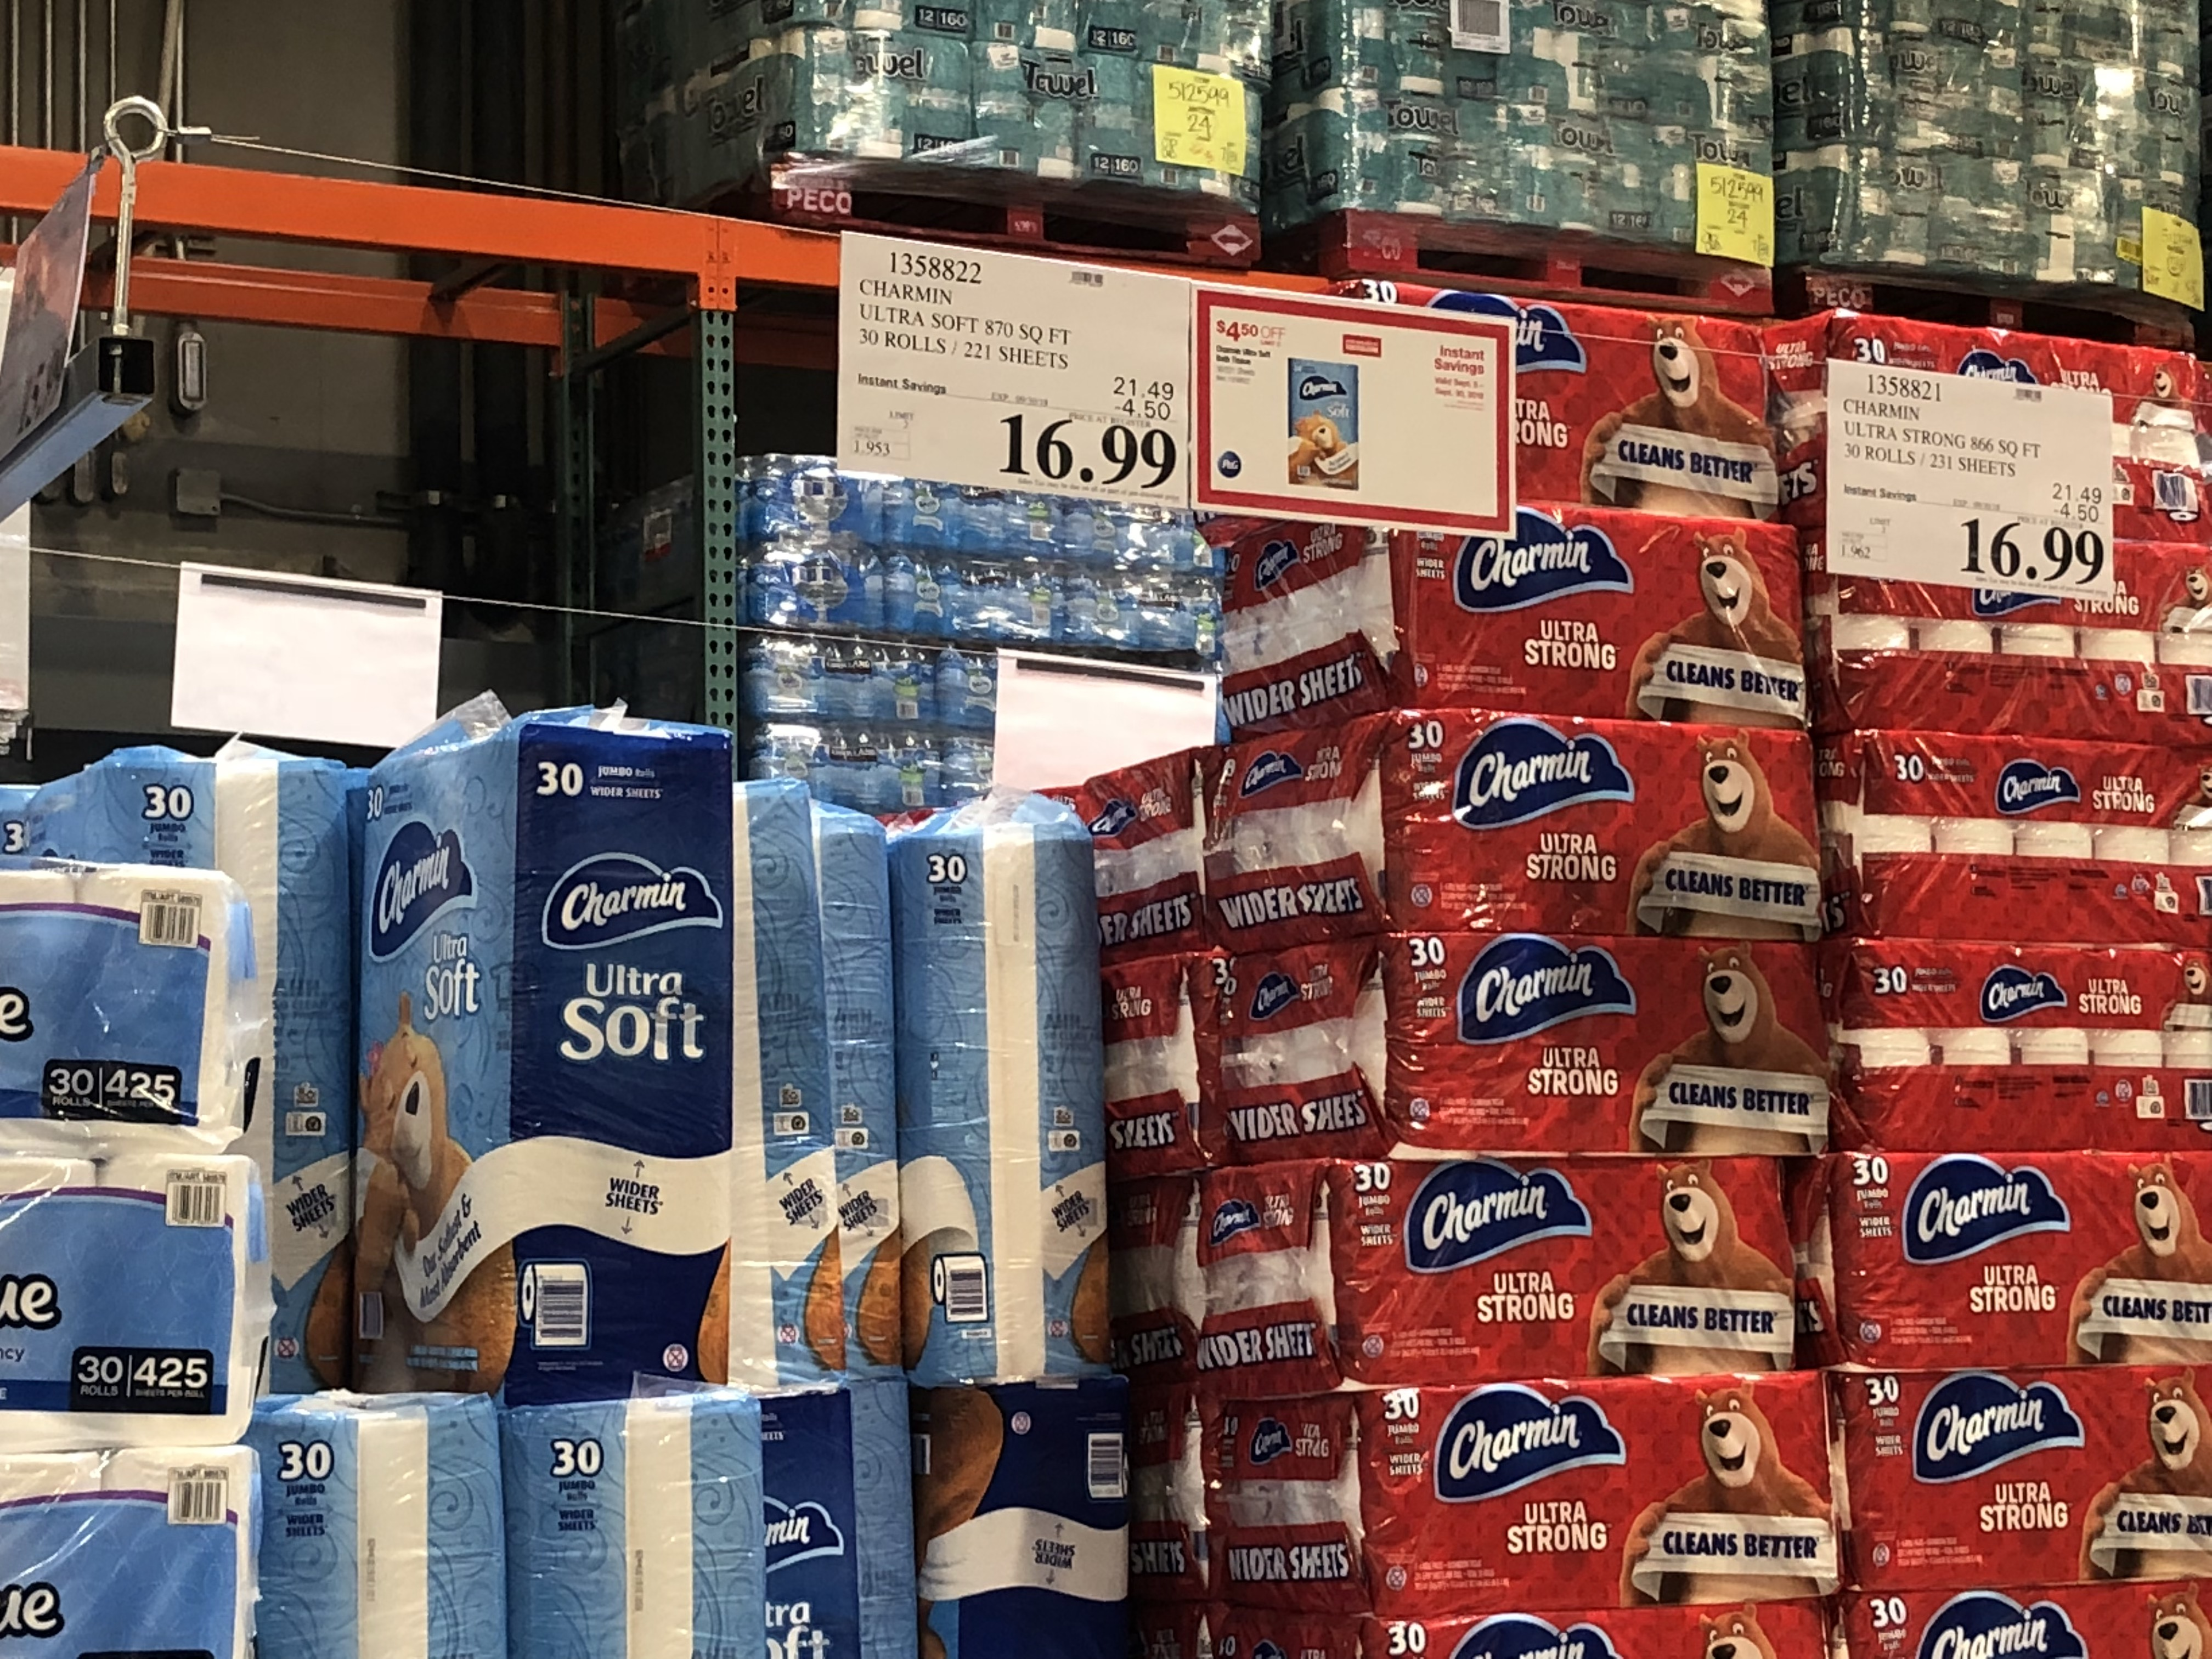 Costco Monthly Deals for September 2018 - Charmin toilet paper at Costco